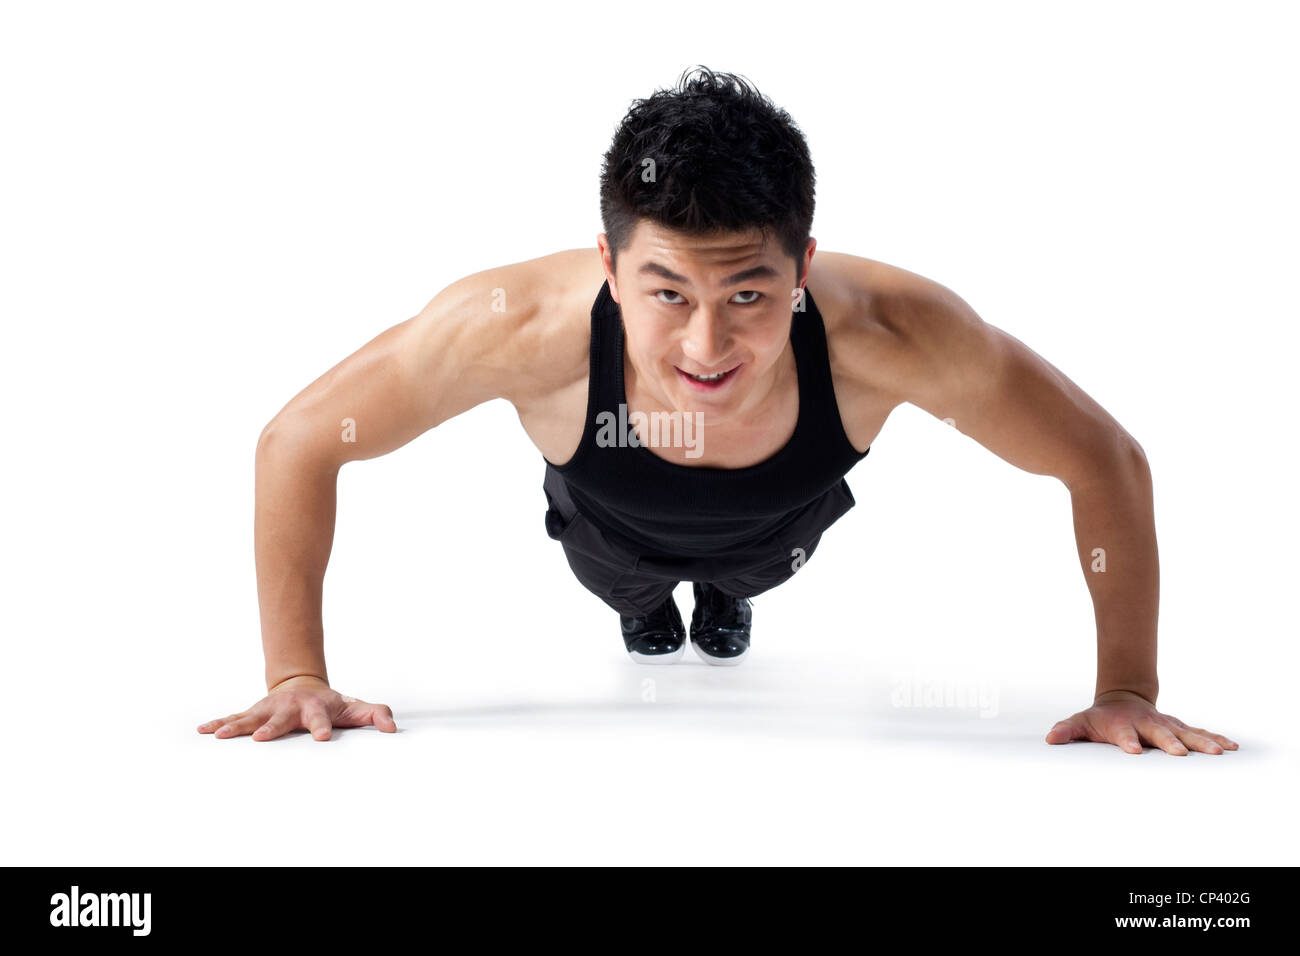 Man doing push-ups Photo Stock